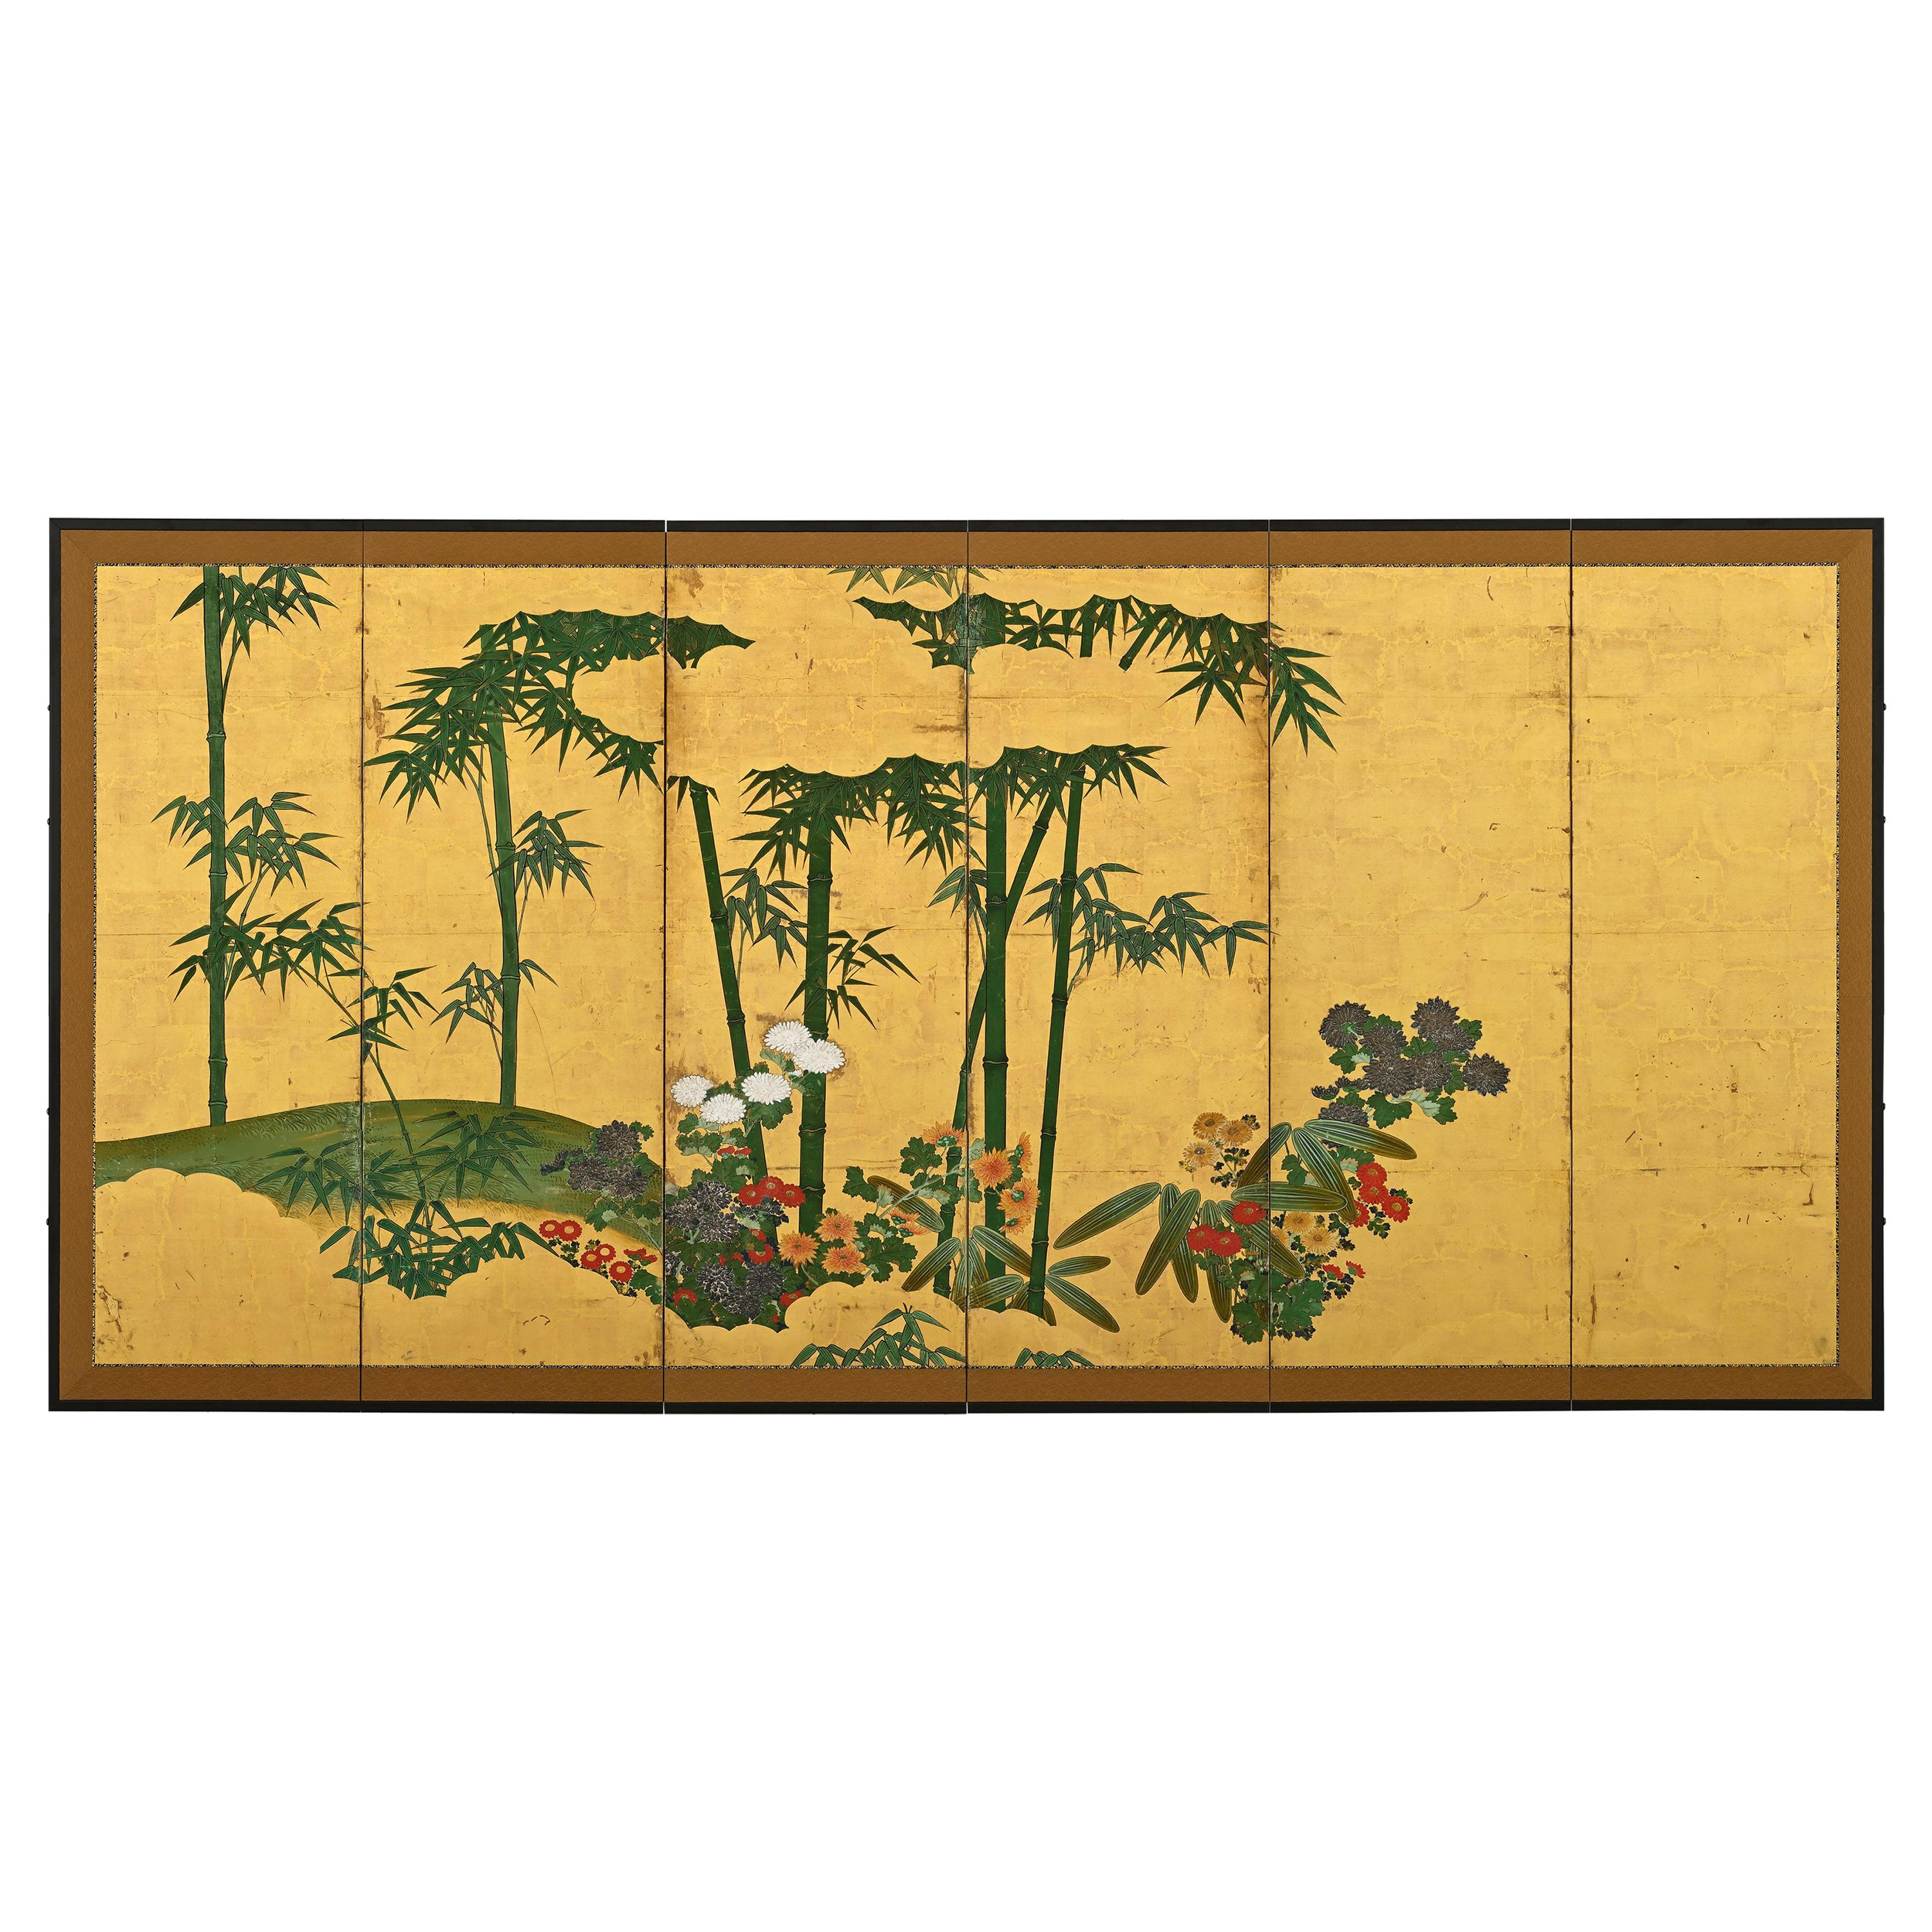 18th Century Japanese Screen, Chrysanthemums & Bamboo on Gold Leaf, Kano School